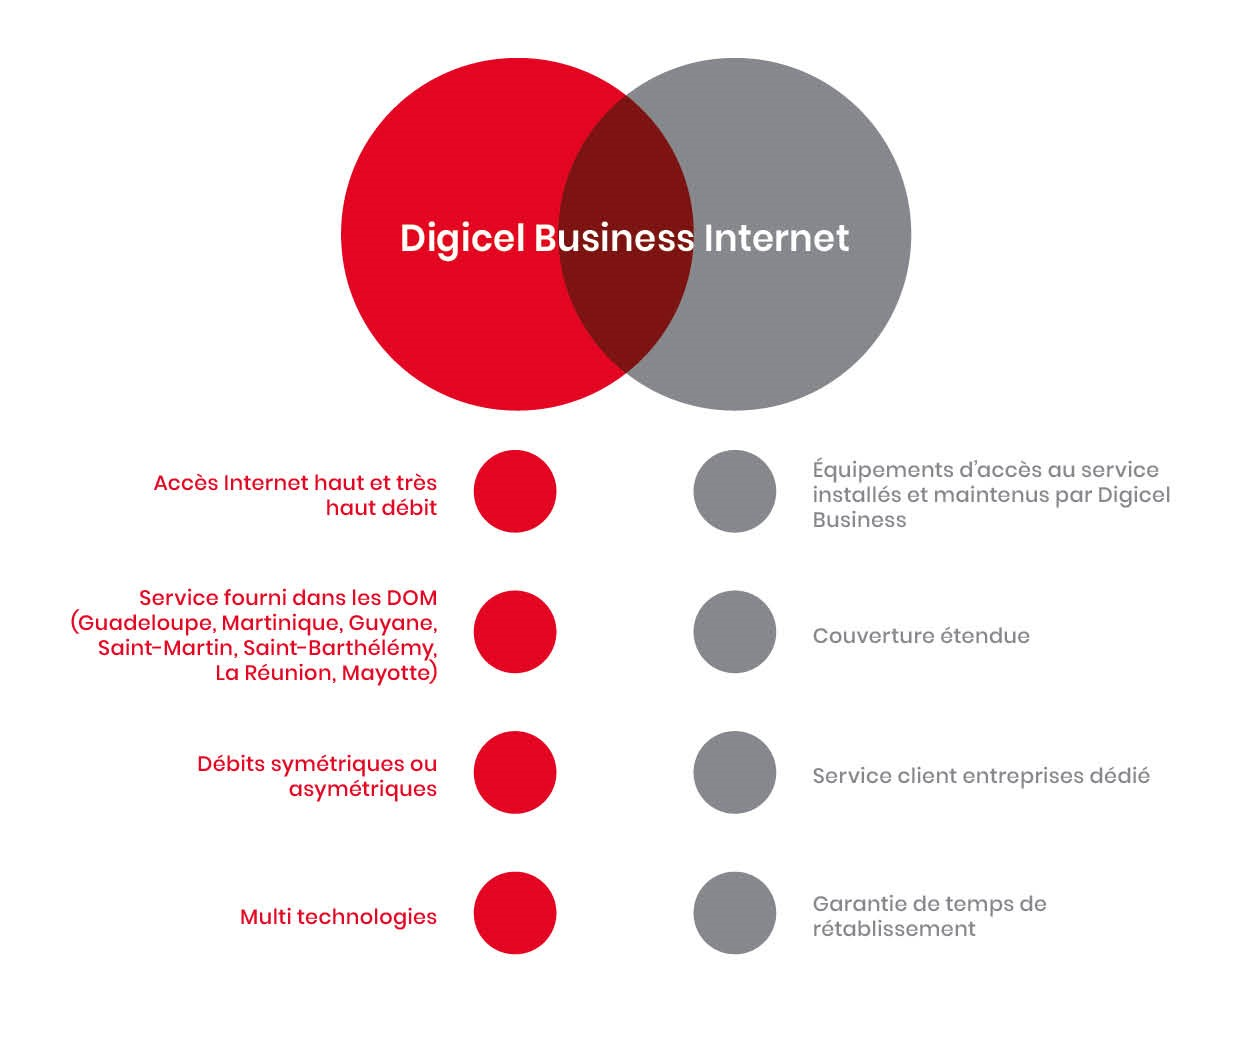 Digicel Business Internet